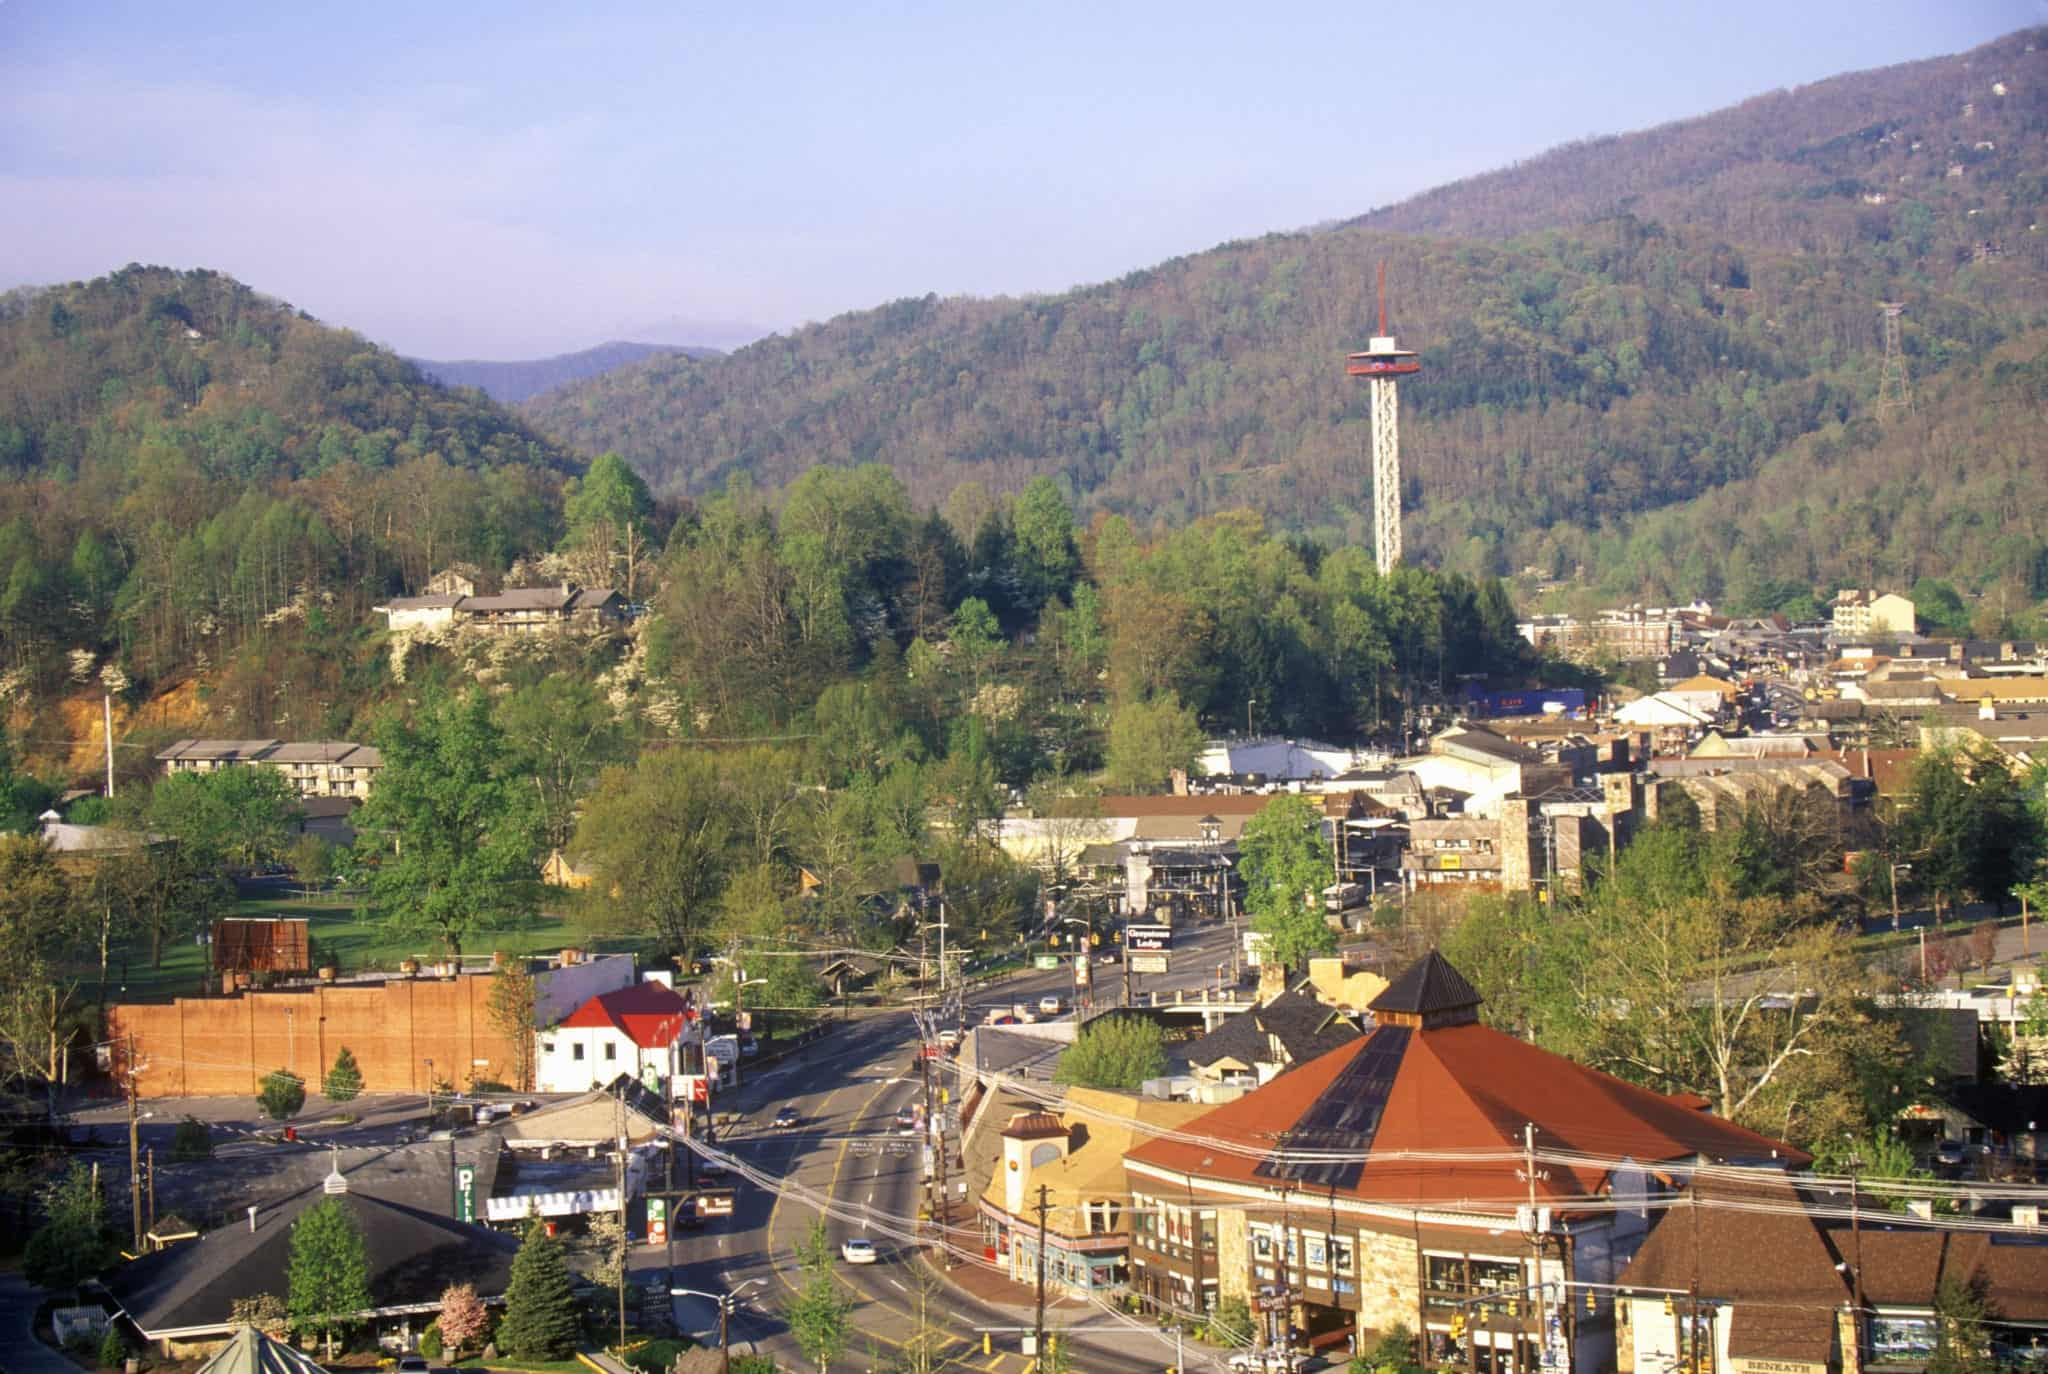 A view of downtown Gatlinburg and the Gatlinburg Space Needle